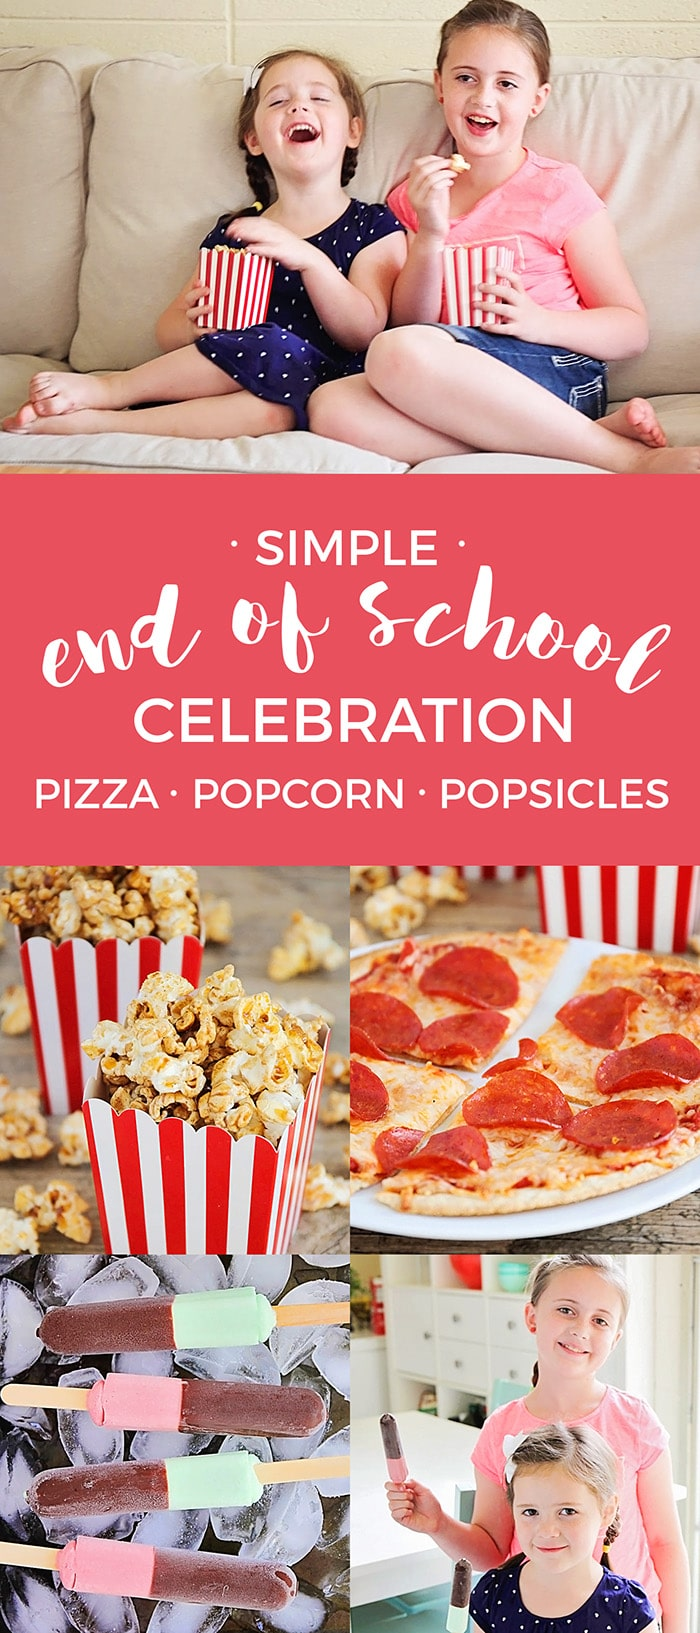 Simple End of School Celebration